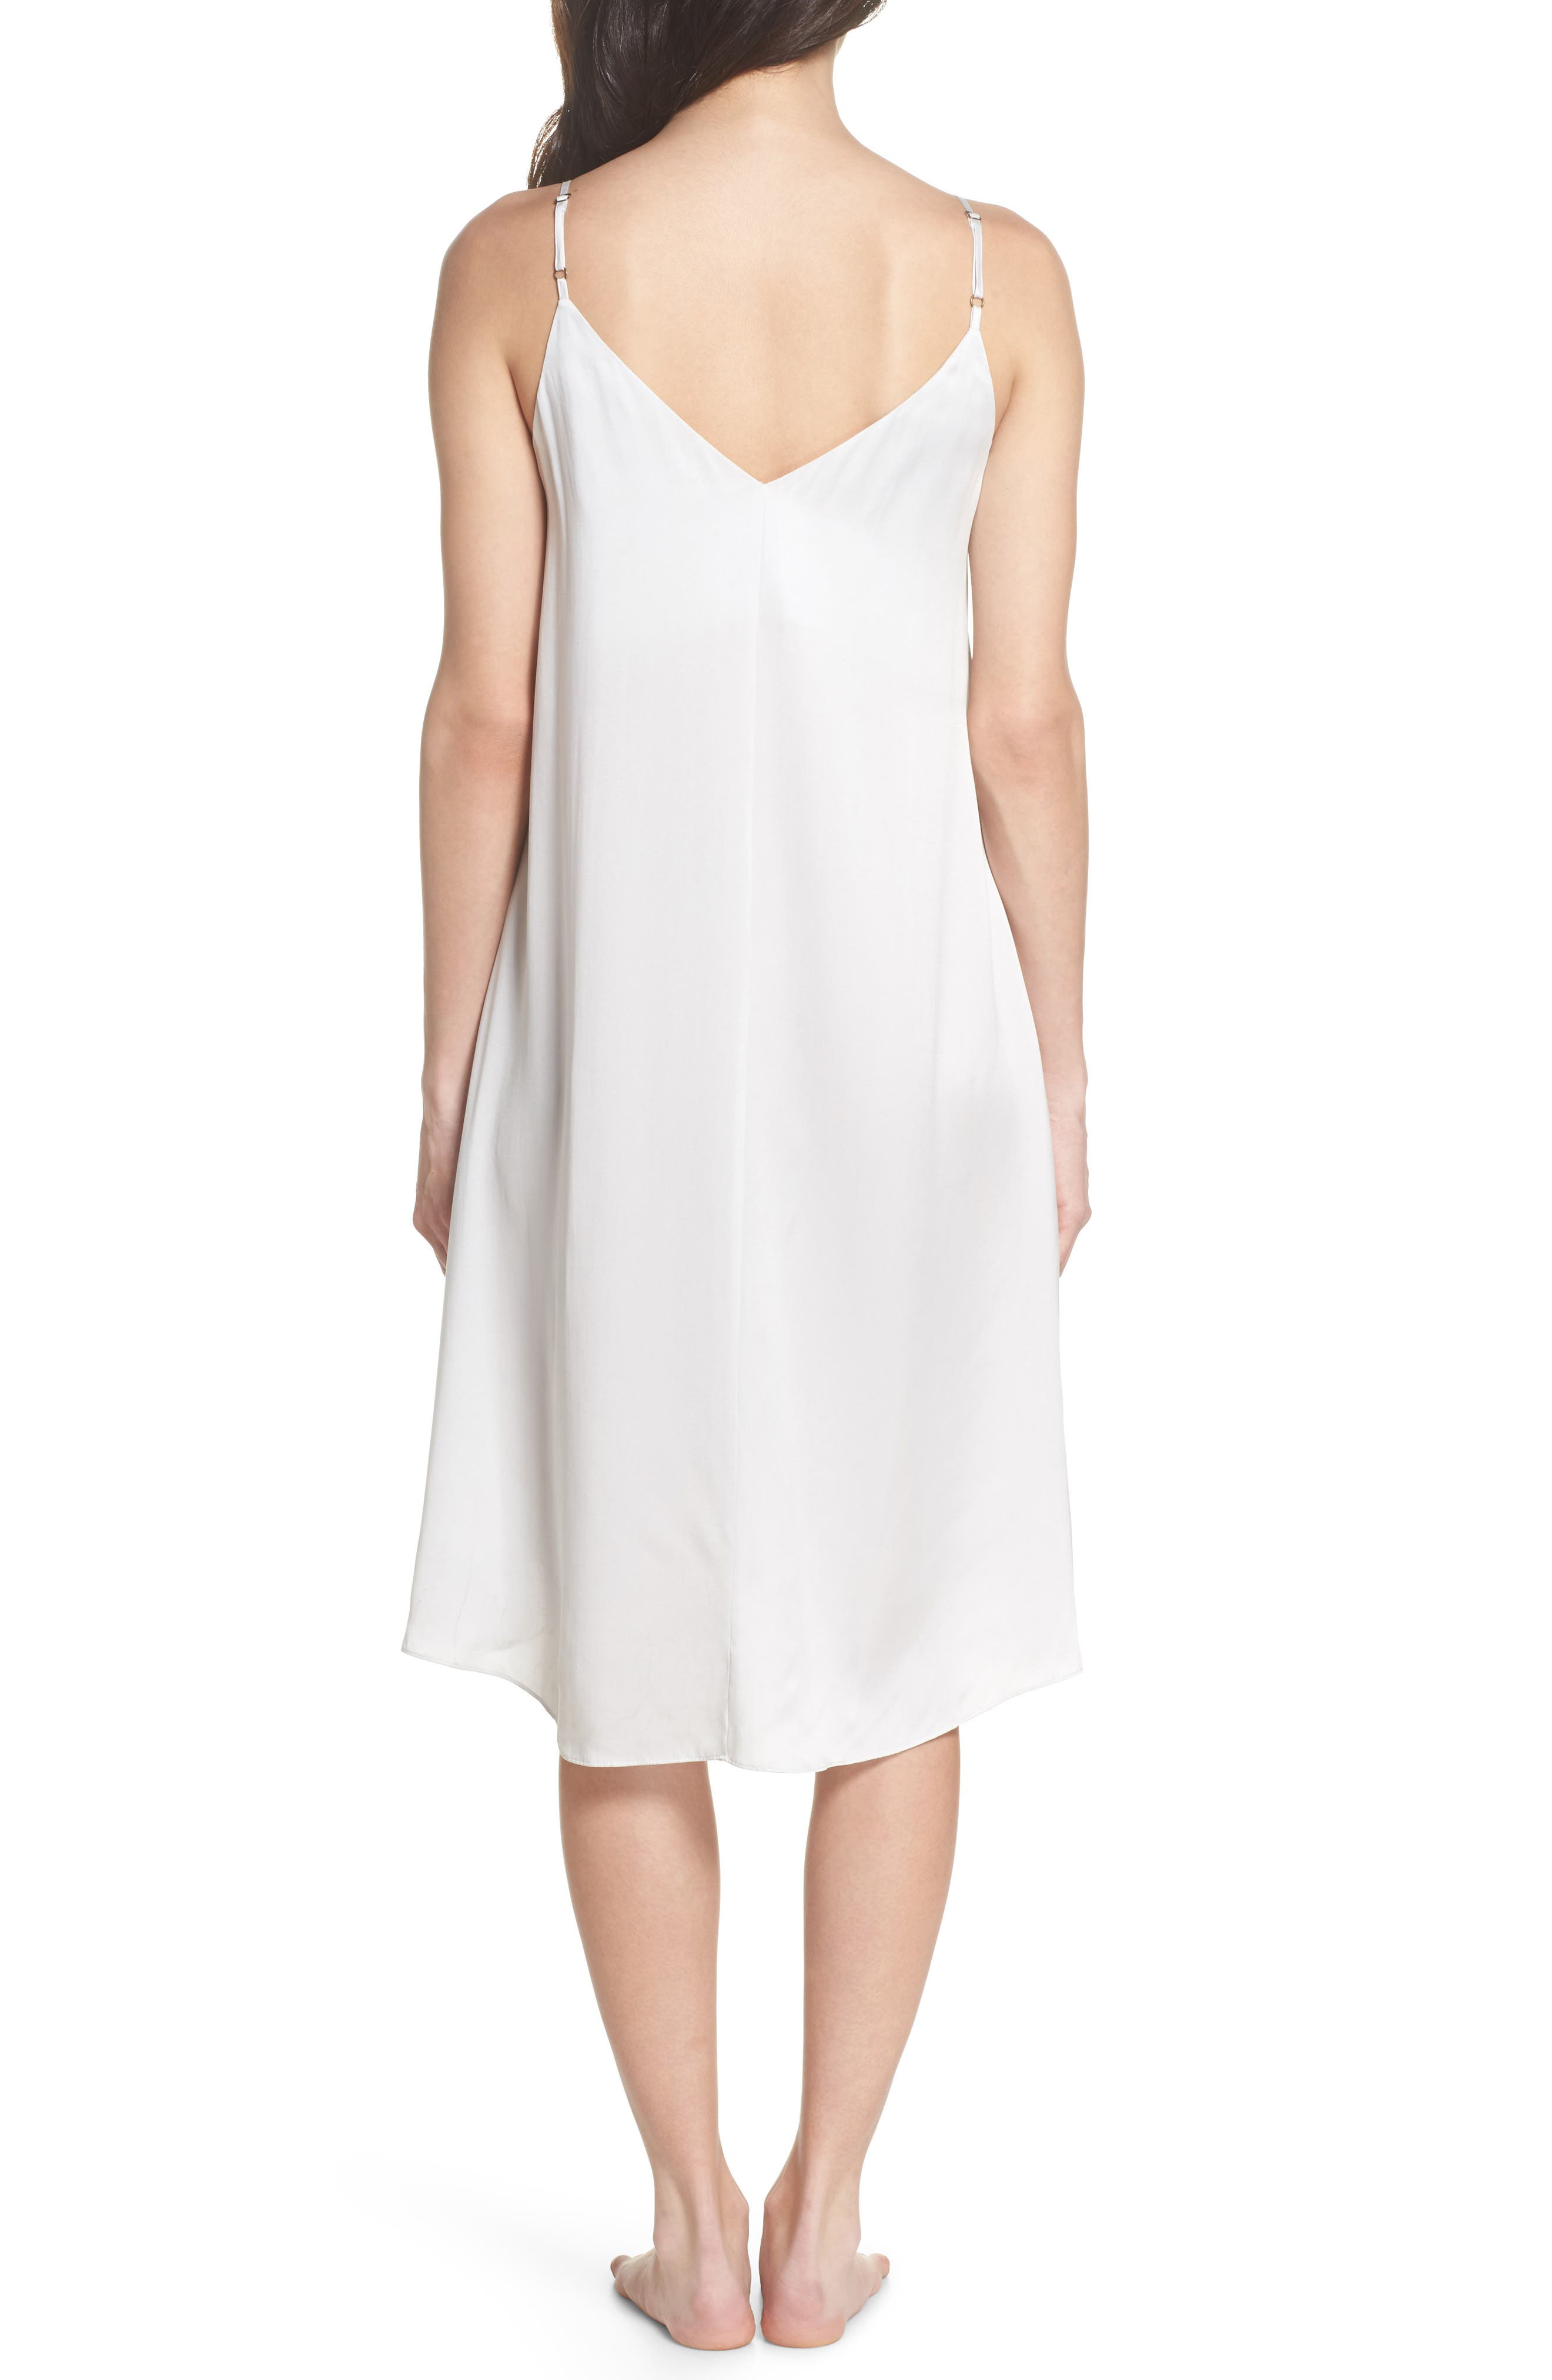 PAPINELLE,                             Silk Nightgown,                             Alternate thumbnail 2, color,                             ICE GREY